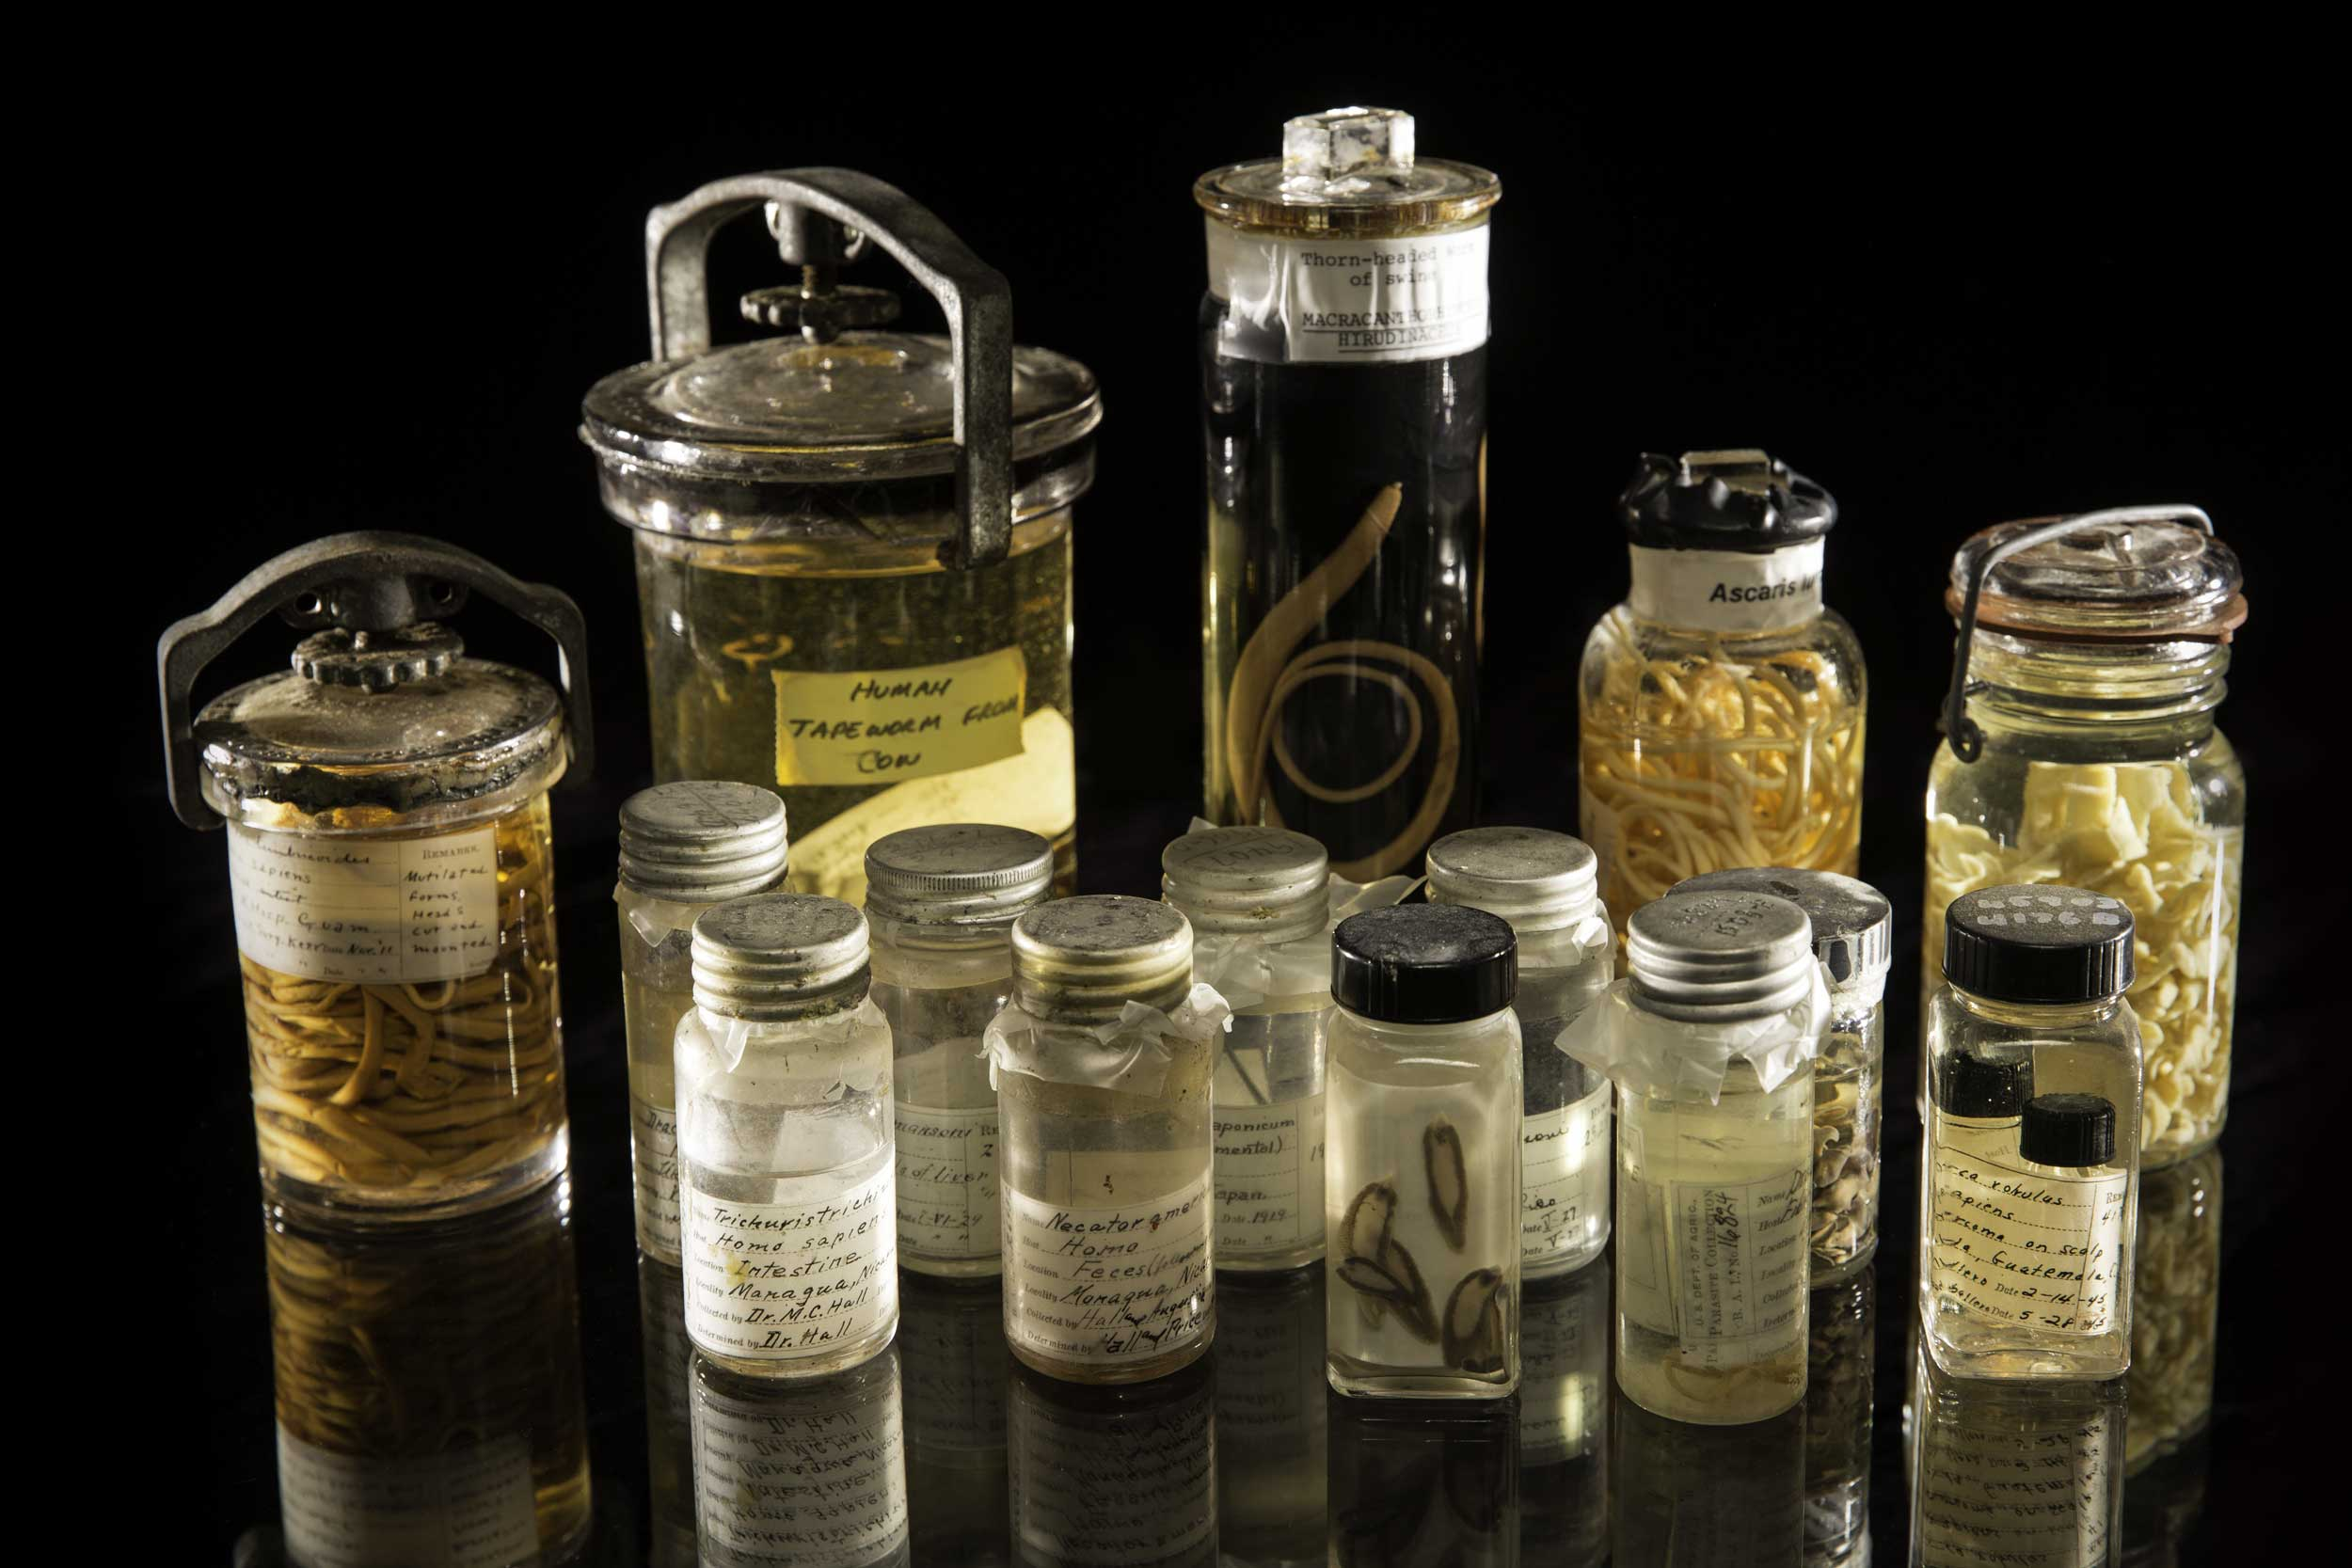 An assortment of specimens from the Smithsonian's National Parasite Collection at the National Museum of Natural History. The National Parasite Collection holds more than 20 million parasite specimens in connection with information about their geographic distribution and host animals. Image credit: Paul Fetters for the Smithsonian Institution